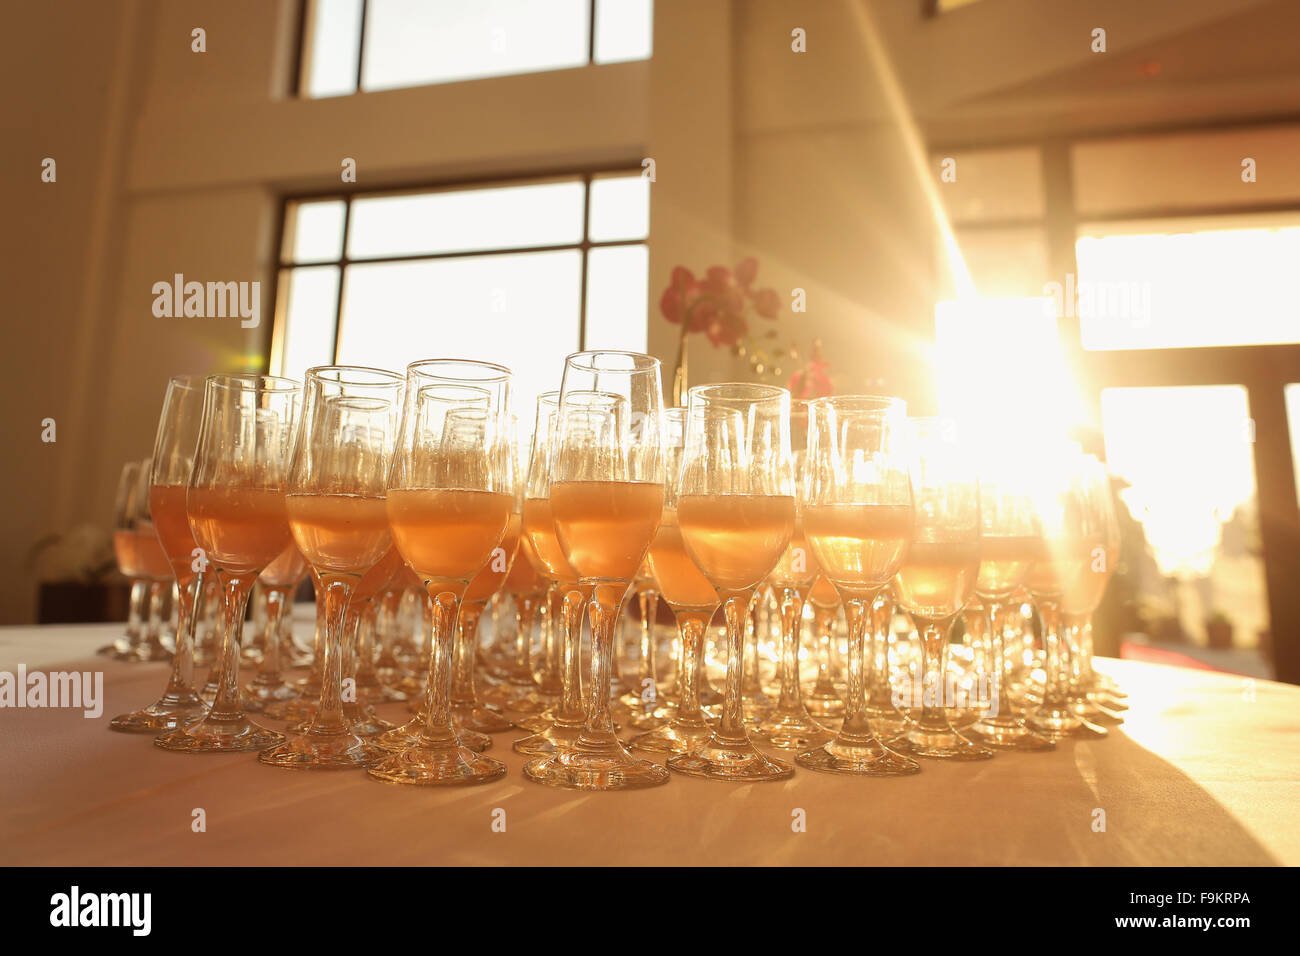 Many glasses of champagne - Stock Image